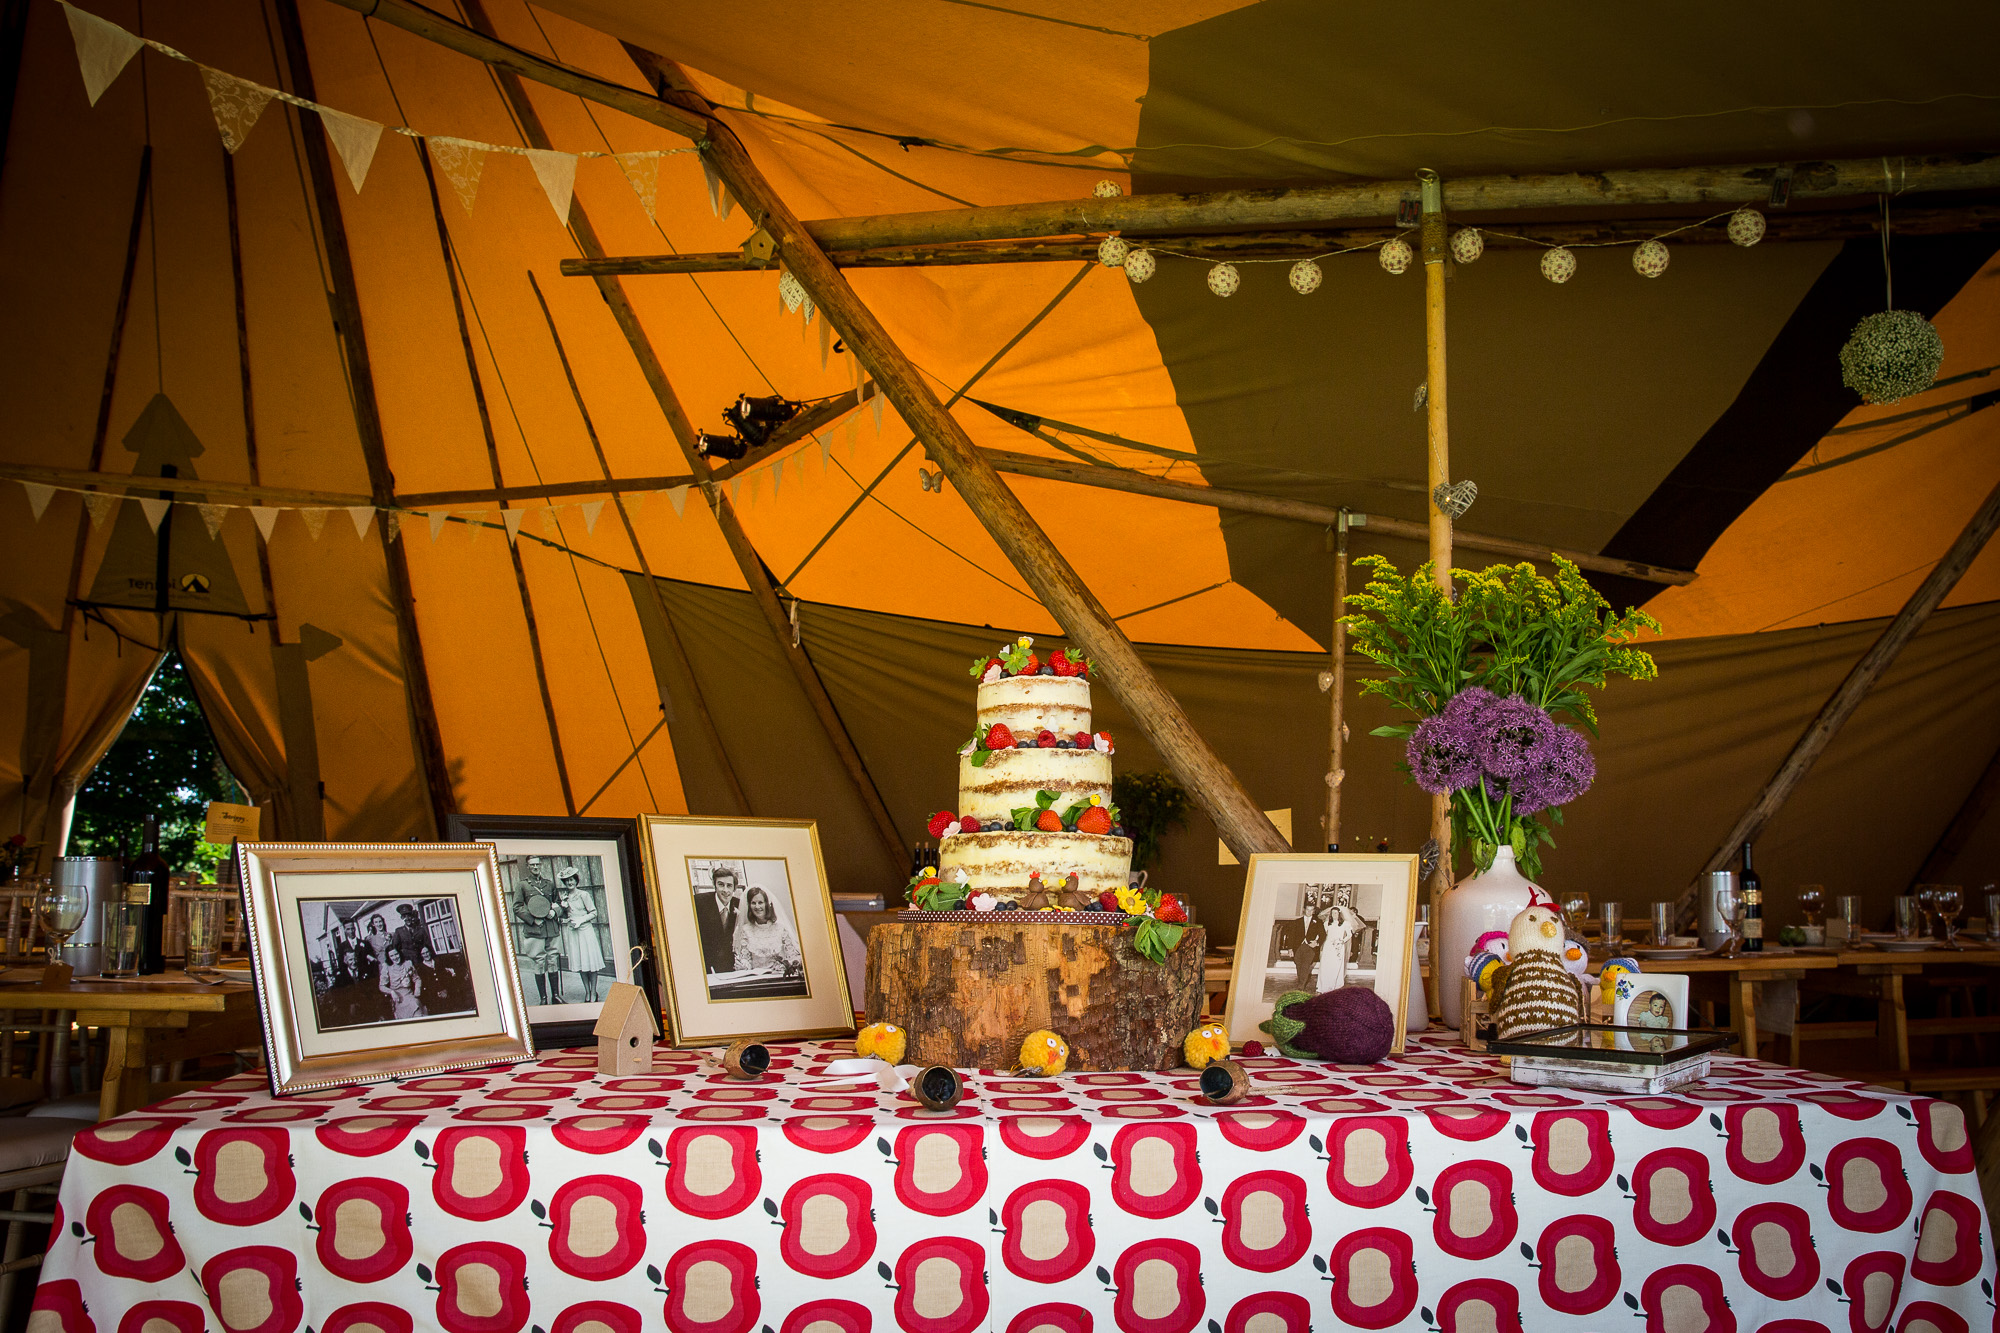 clairebyrnephotography-DIY-tipi-backyard-fun-wedding-60.jpg